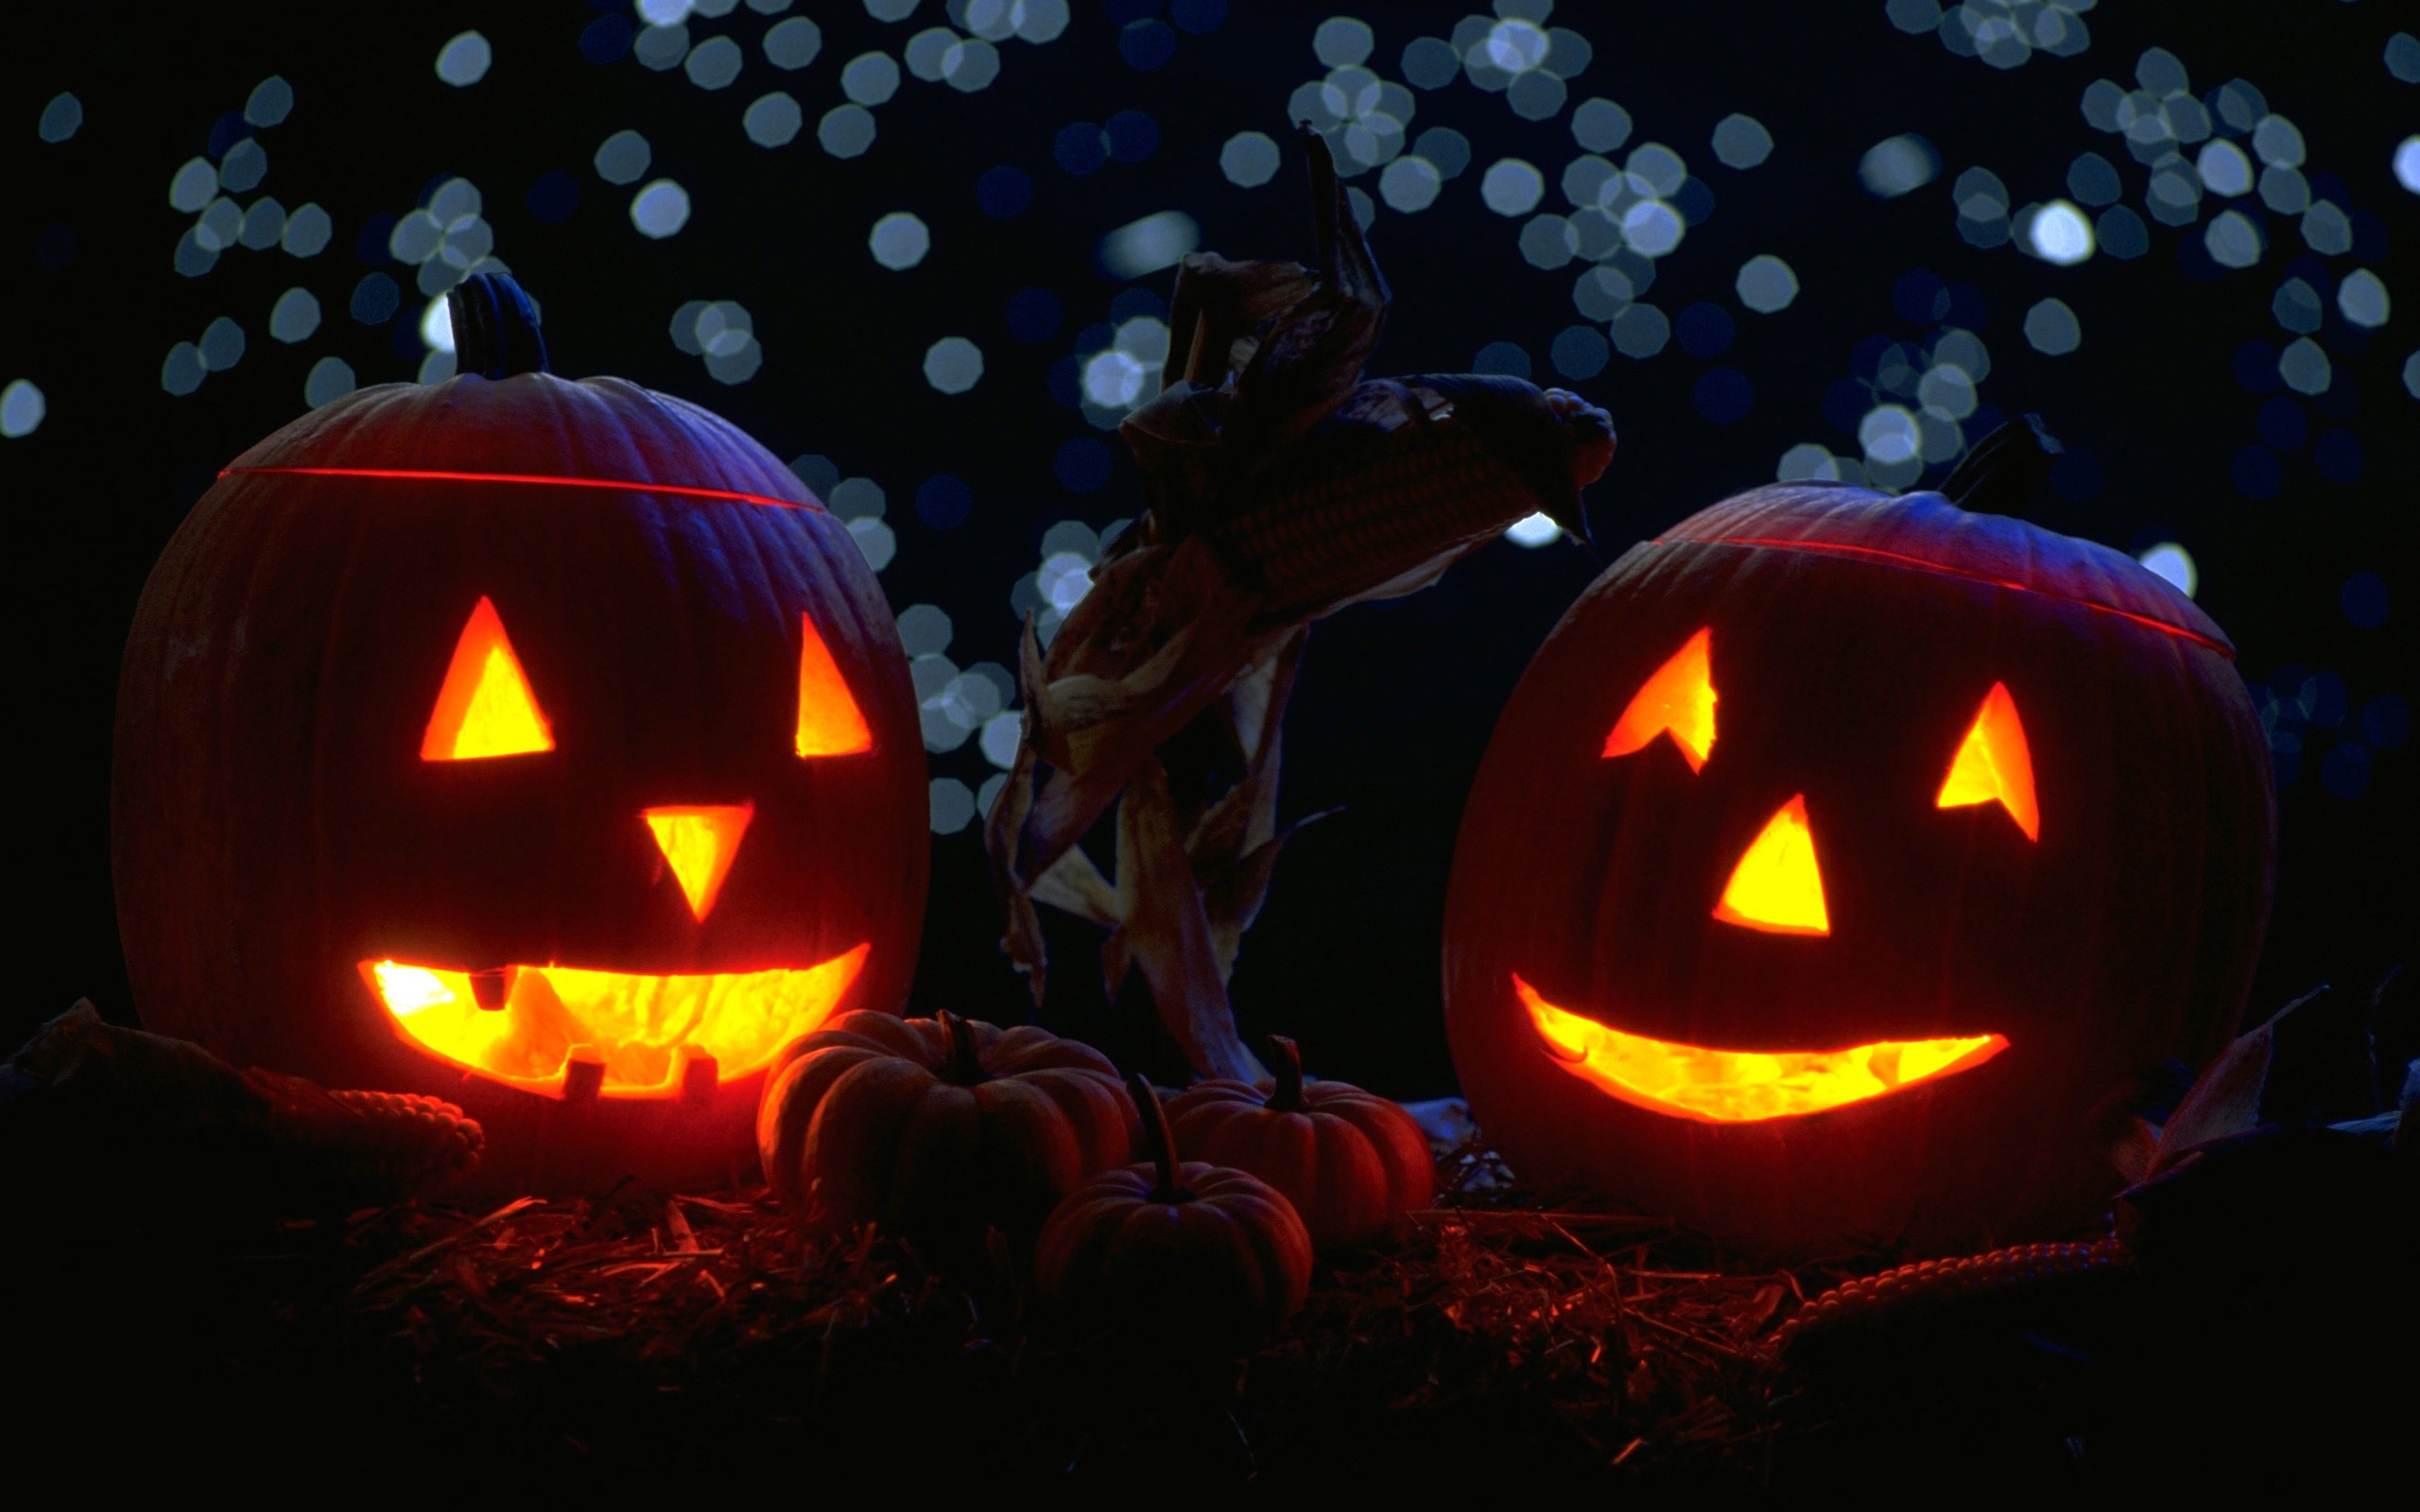 2560x1600 pumpkins with candles in the night halloween widescreen wallpapers ...  Pumpkins With Candles In The Night Halloween Widescreen Wallpapers